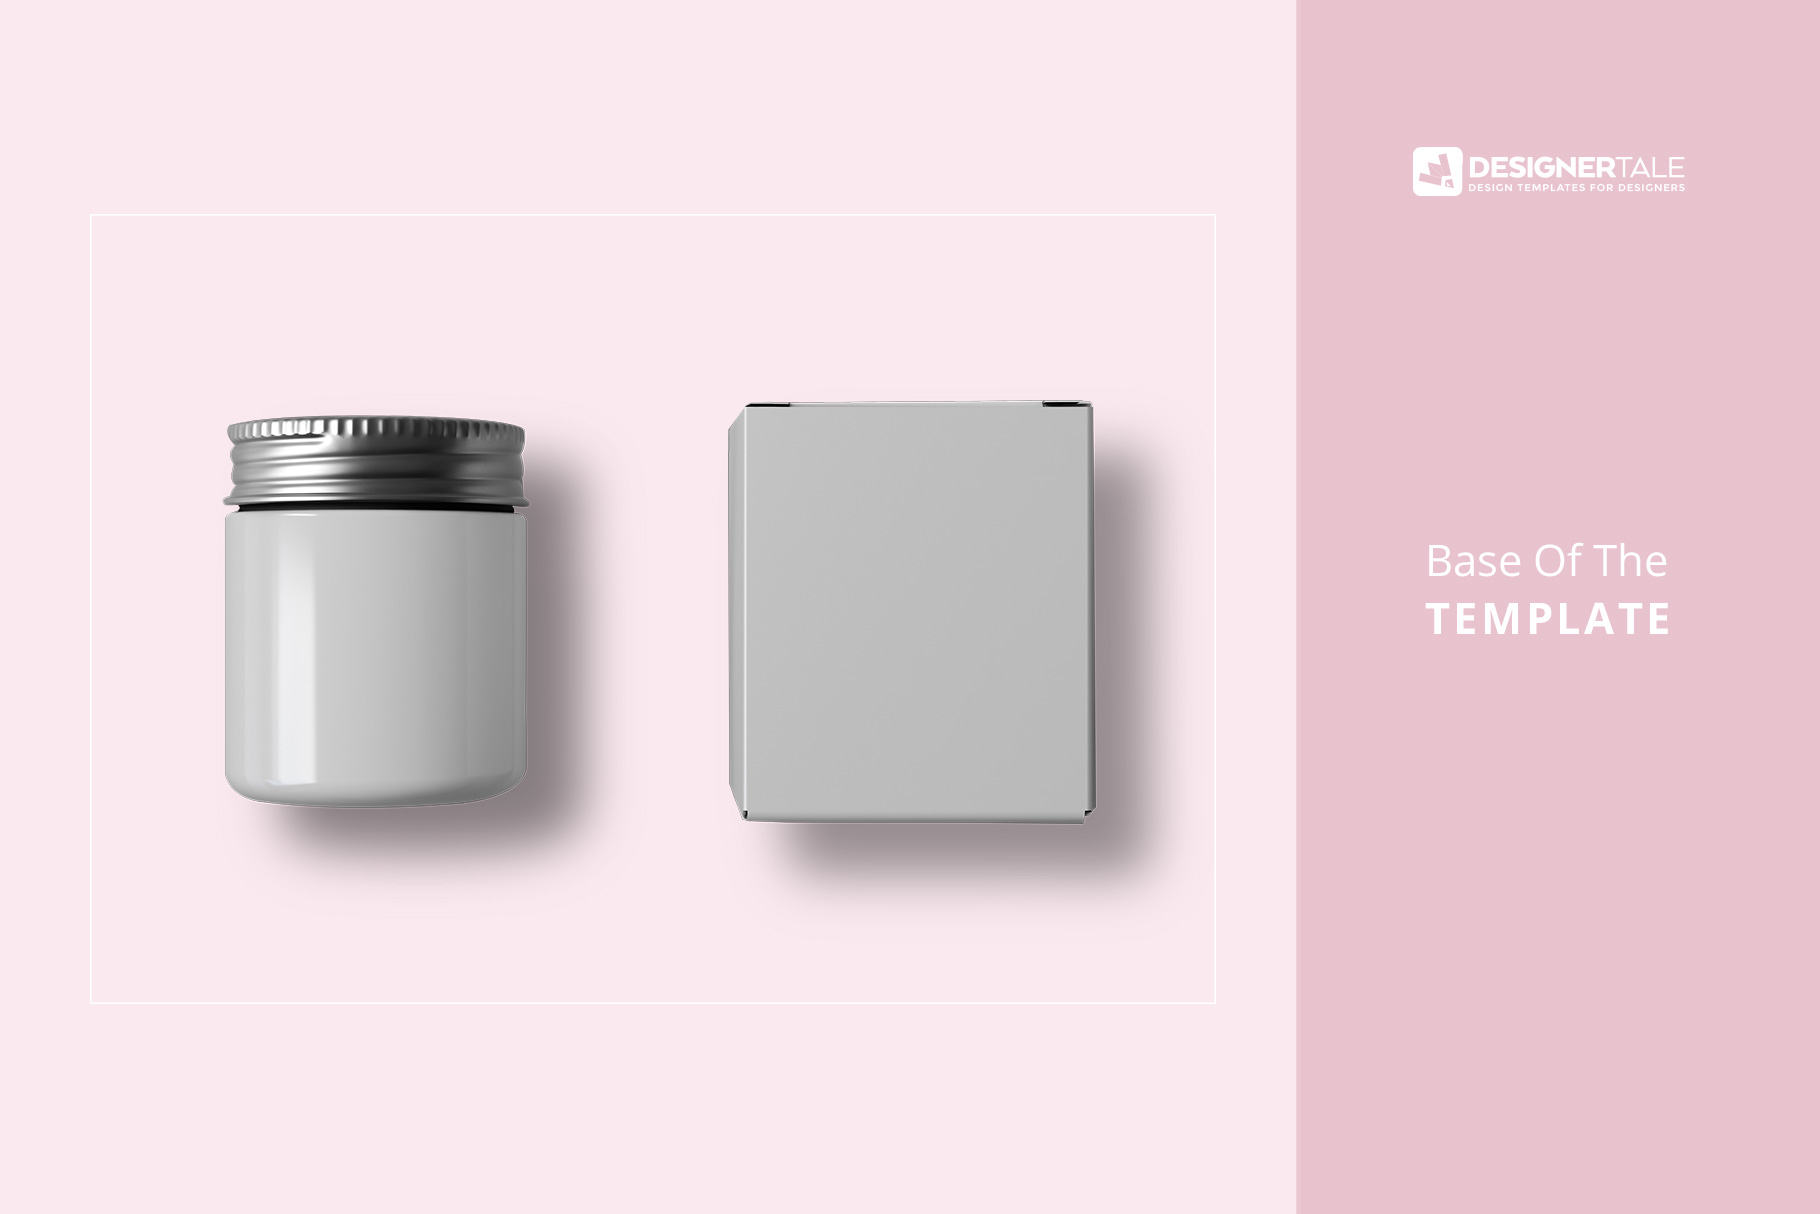 base image of the top view cosmetic bottle and box packaging mockup